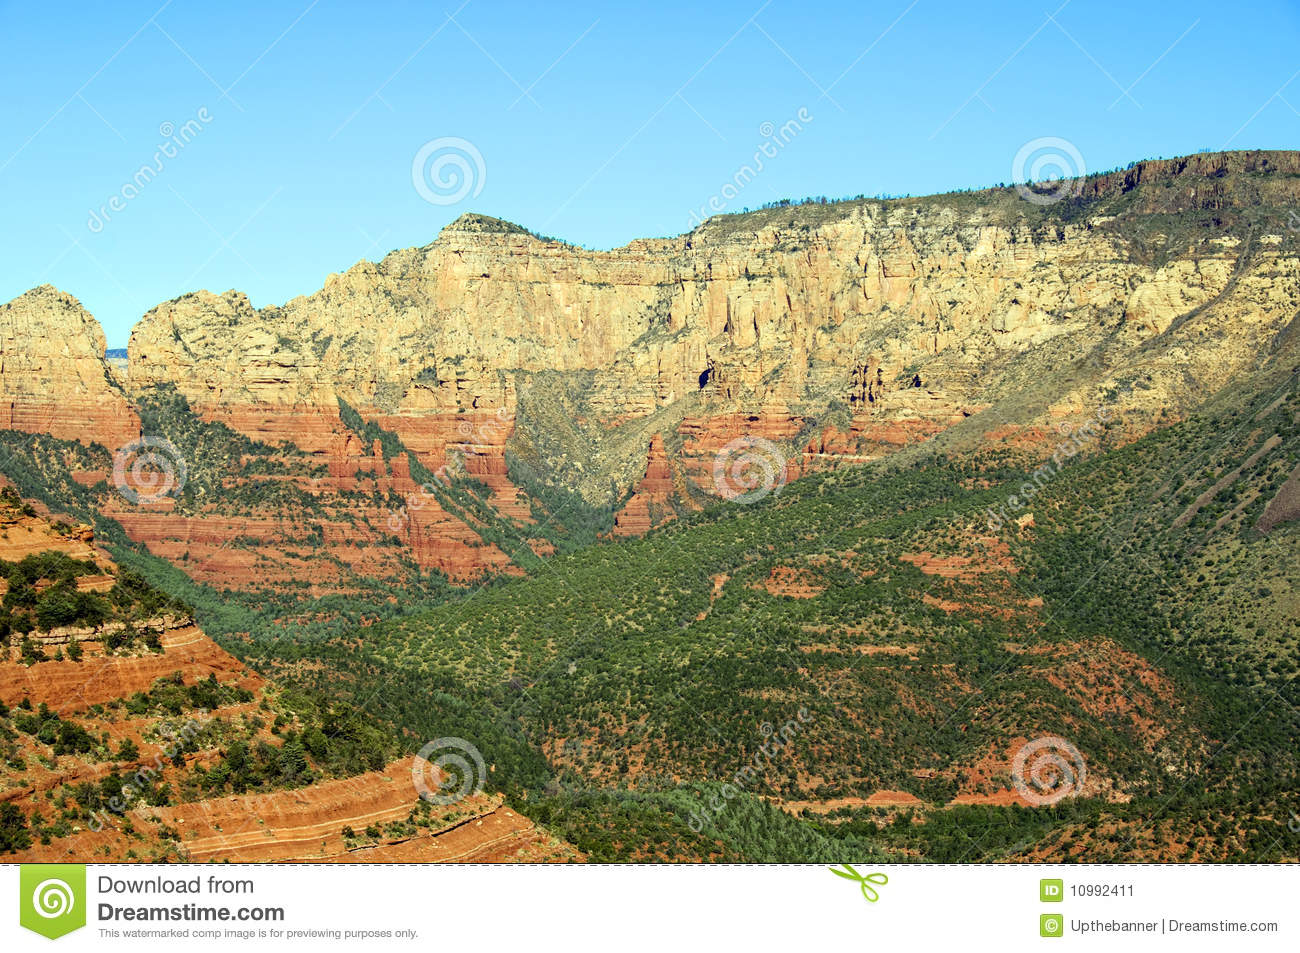 Red stone landscape of sedona in arizona stock image for Red stone landscape rock